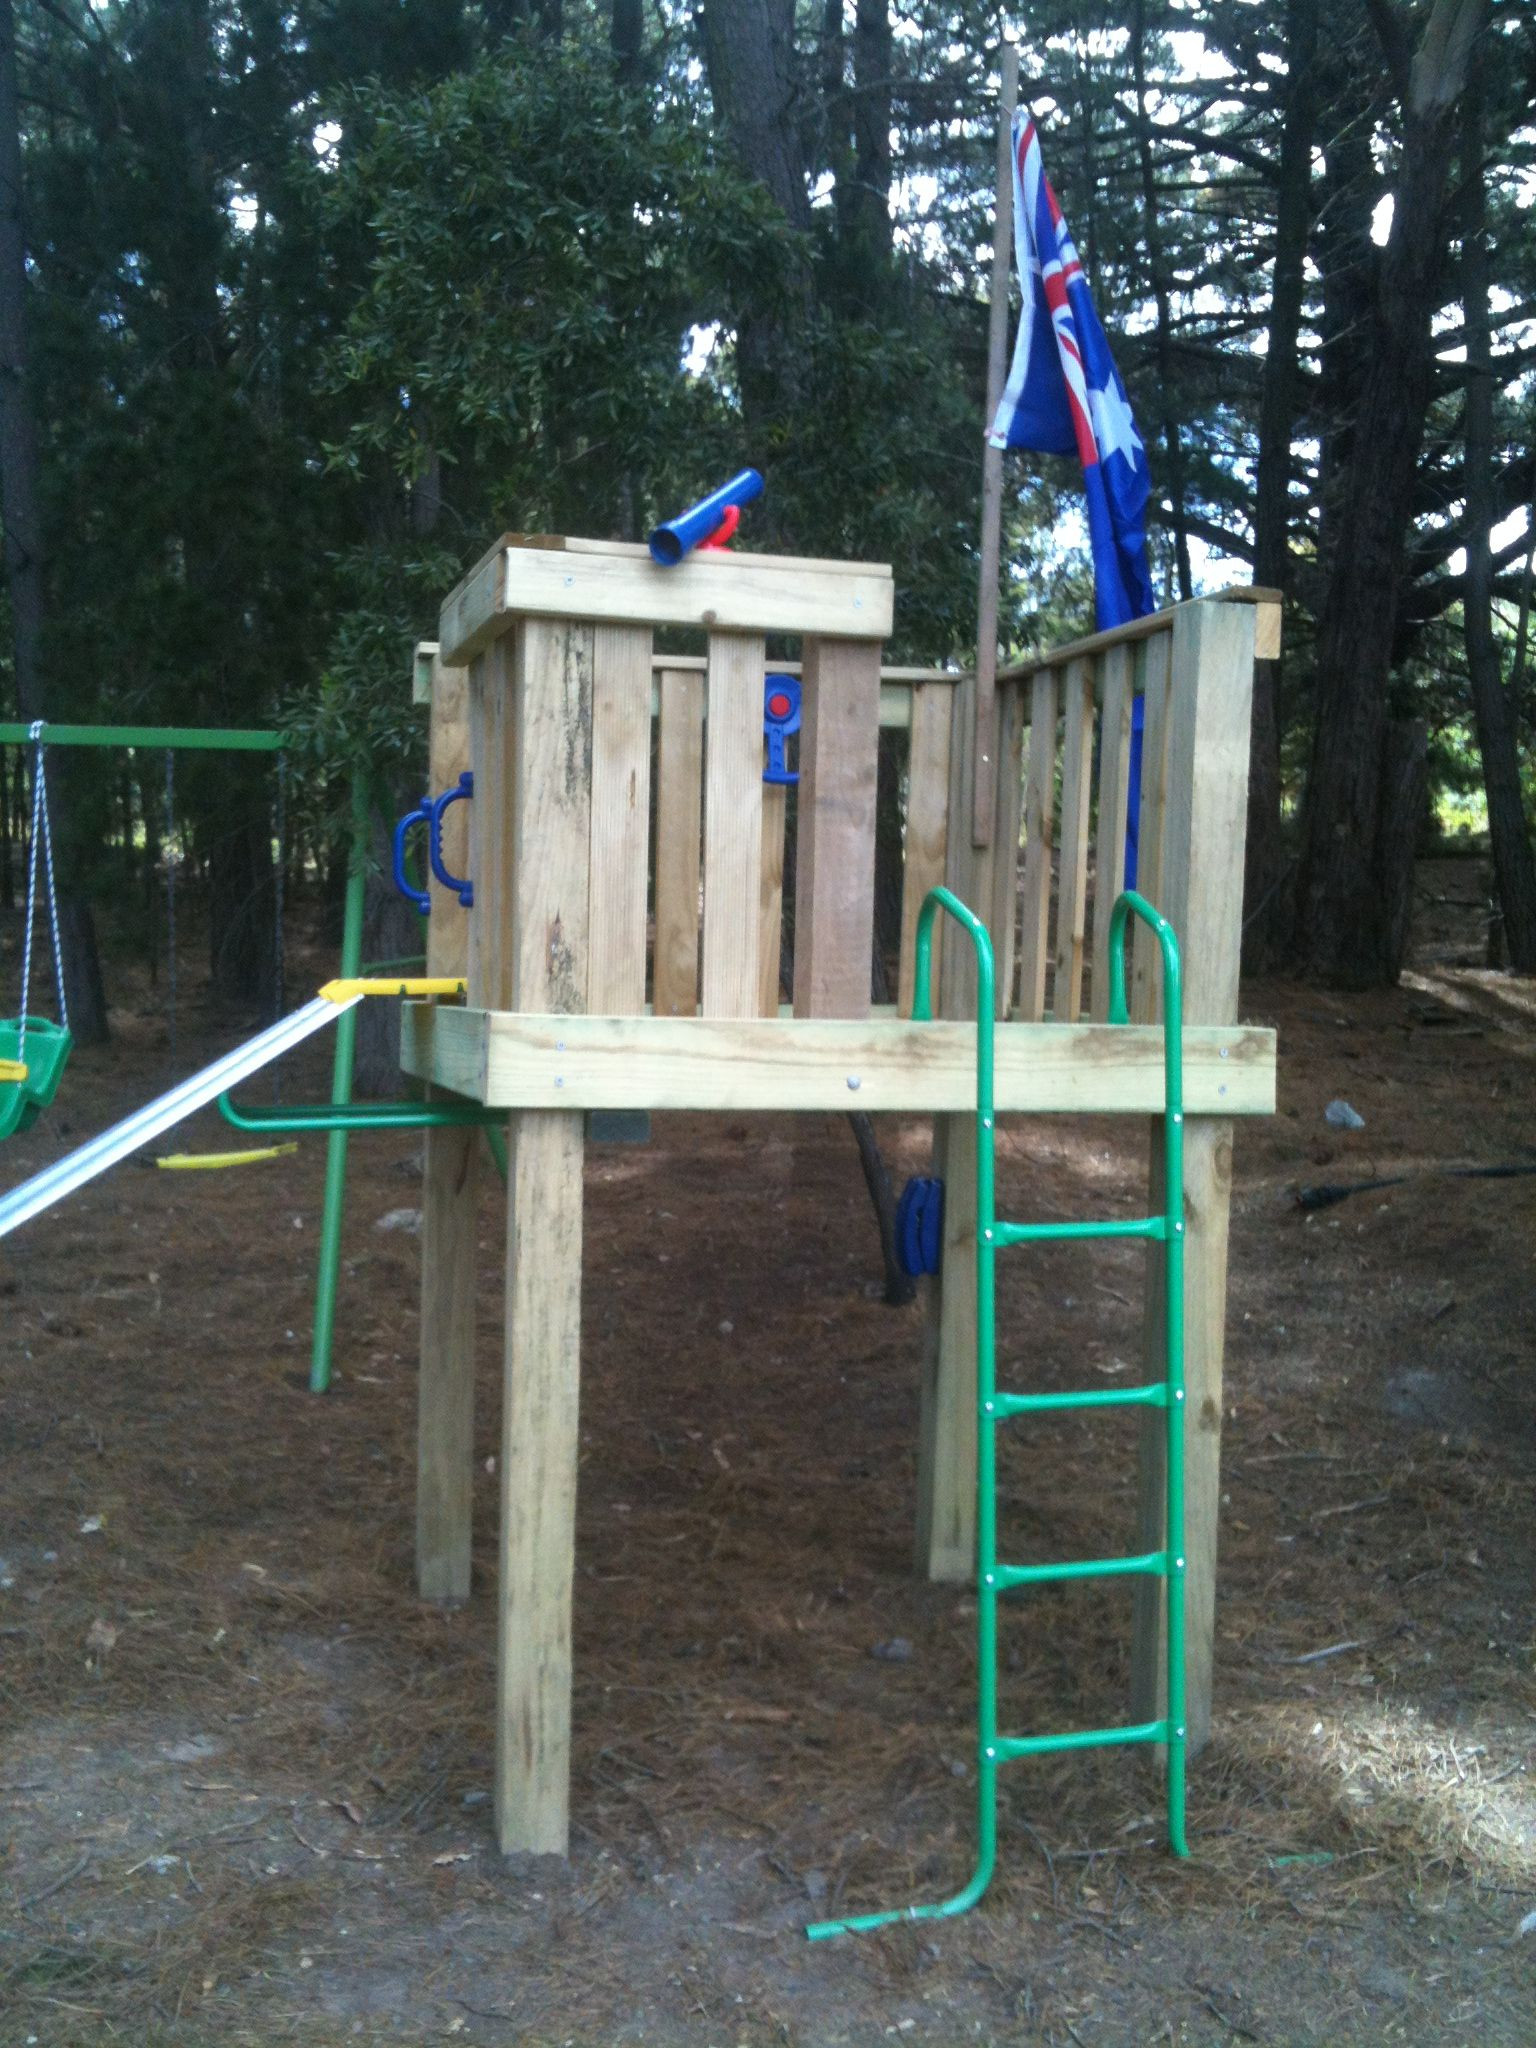 Best ideas about DIY Kids Fort . Save or Pin Kids Fort DiY Now.